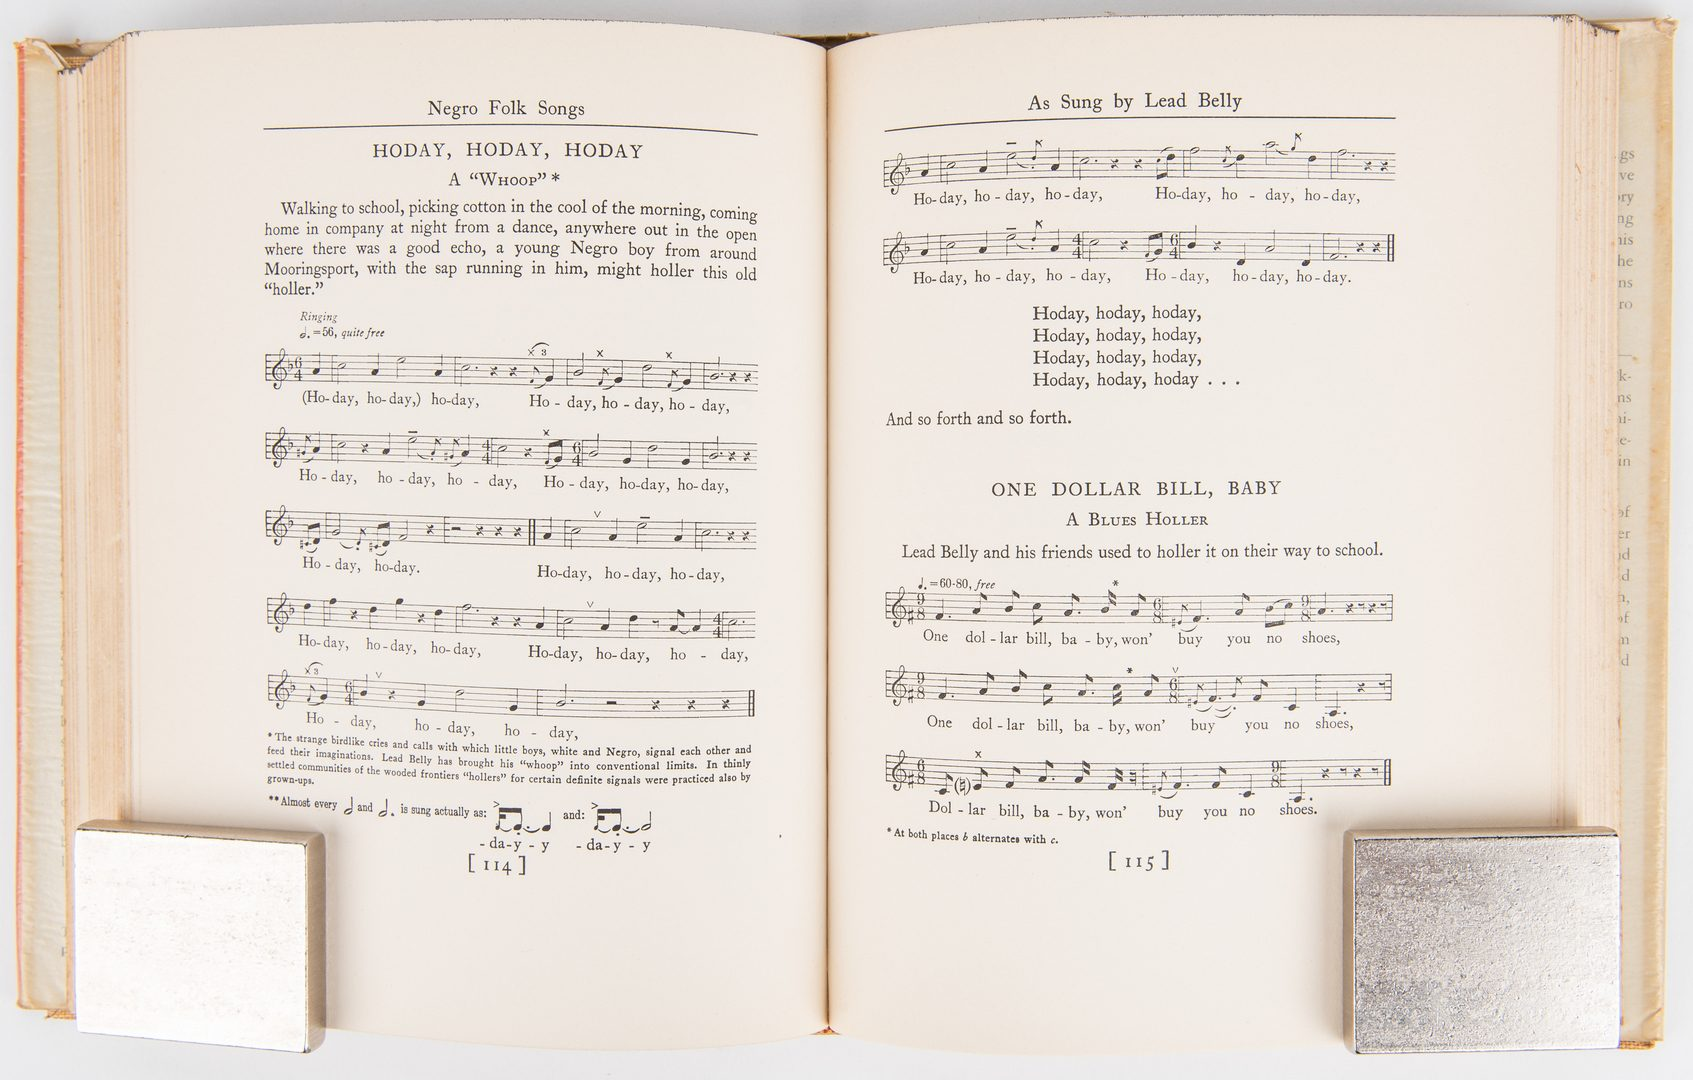 Lot 816: Lomax, Negro Folk Songs, 1936